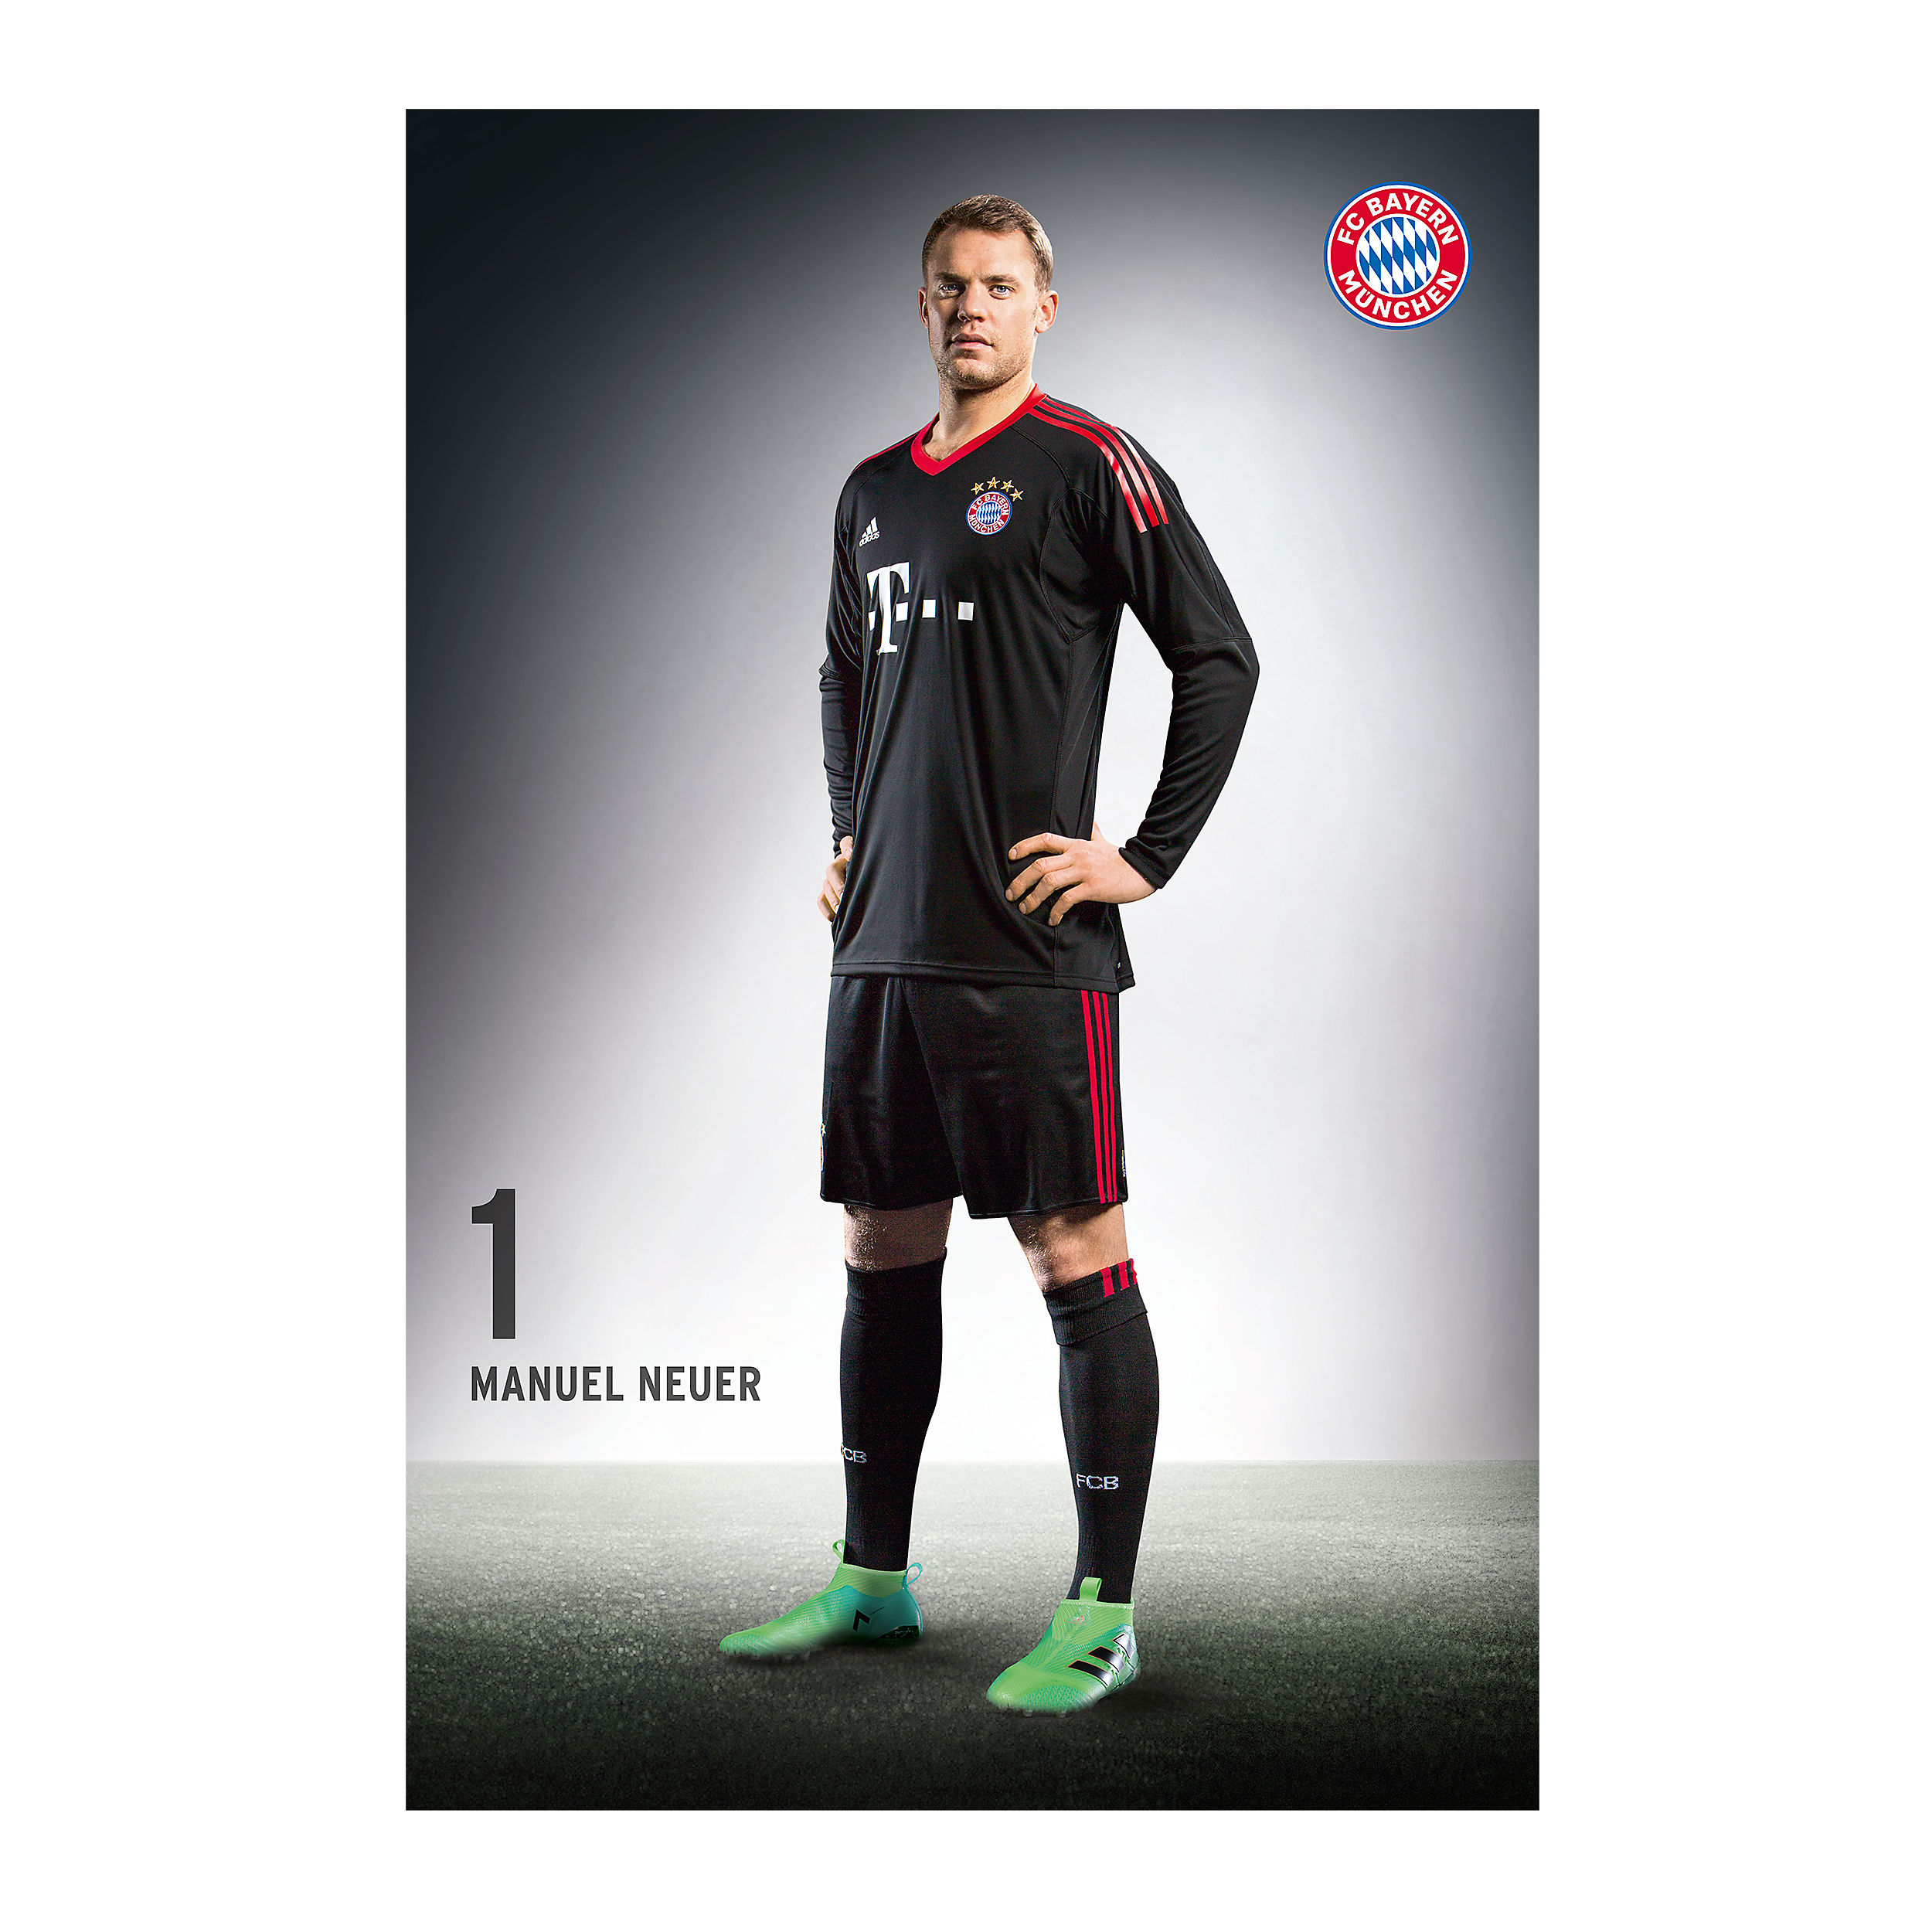 739f9a62591 ... long sleeves goalkeeper soccer country jersey 4977d a0f9b; discount  code for brazil blank or custom green goalkeeper soccer jersey is not  available in ...